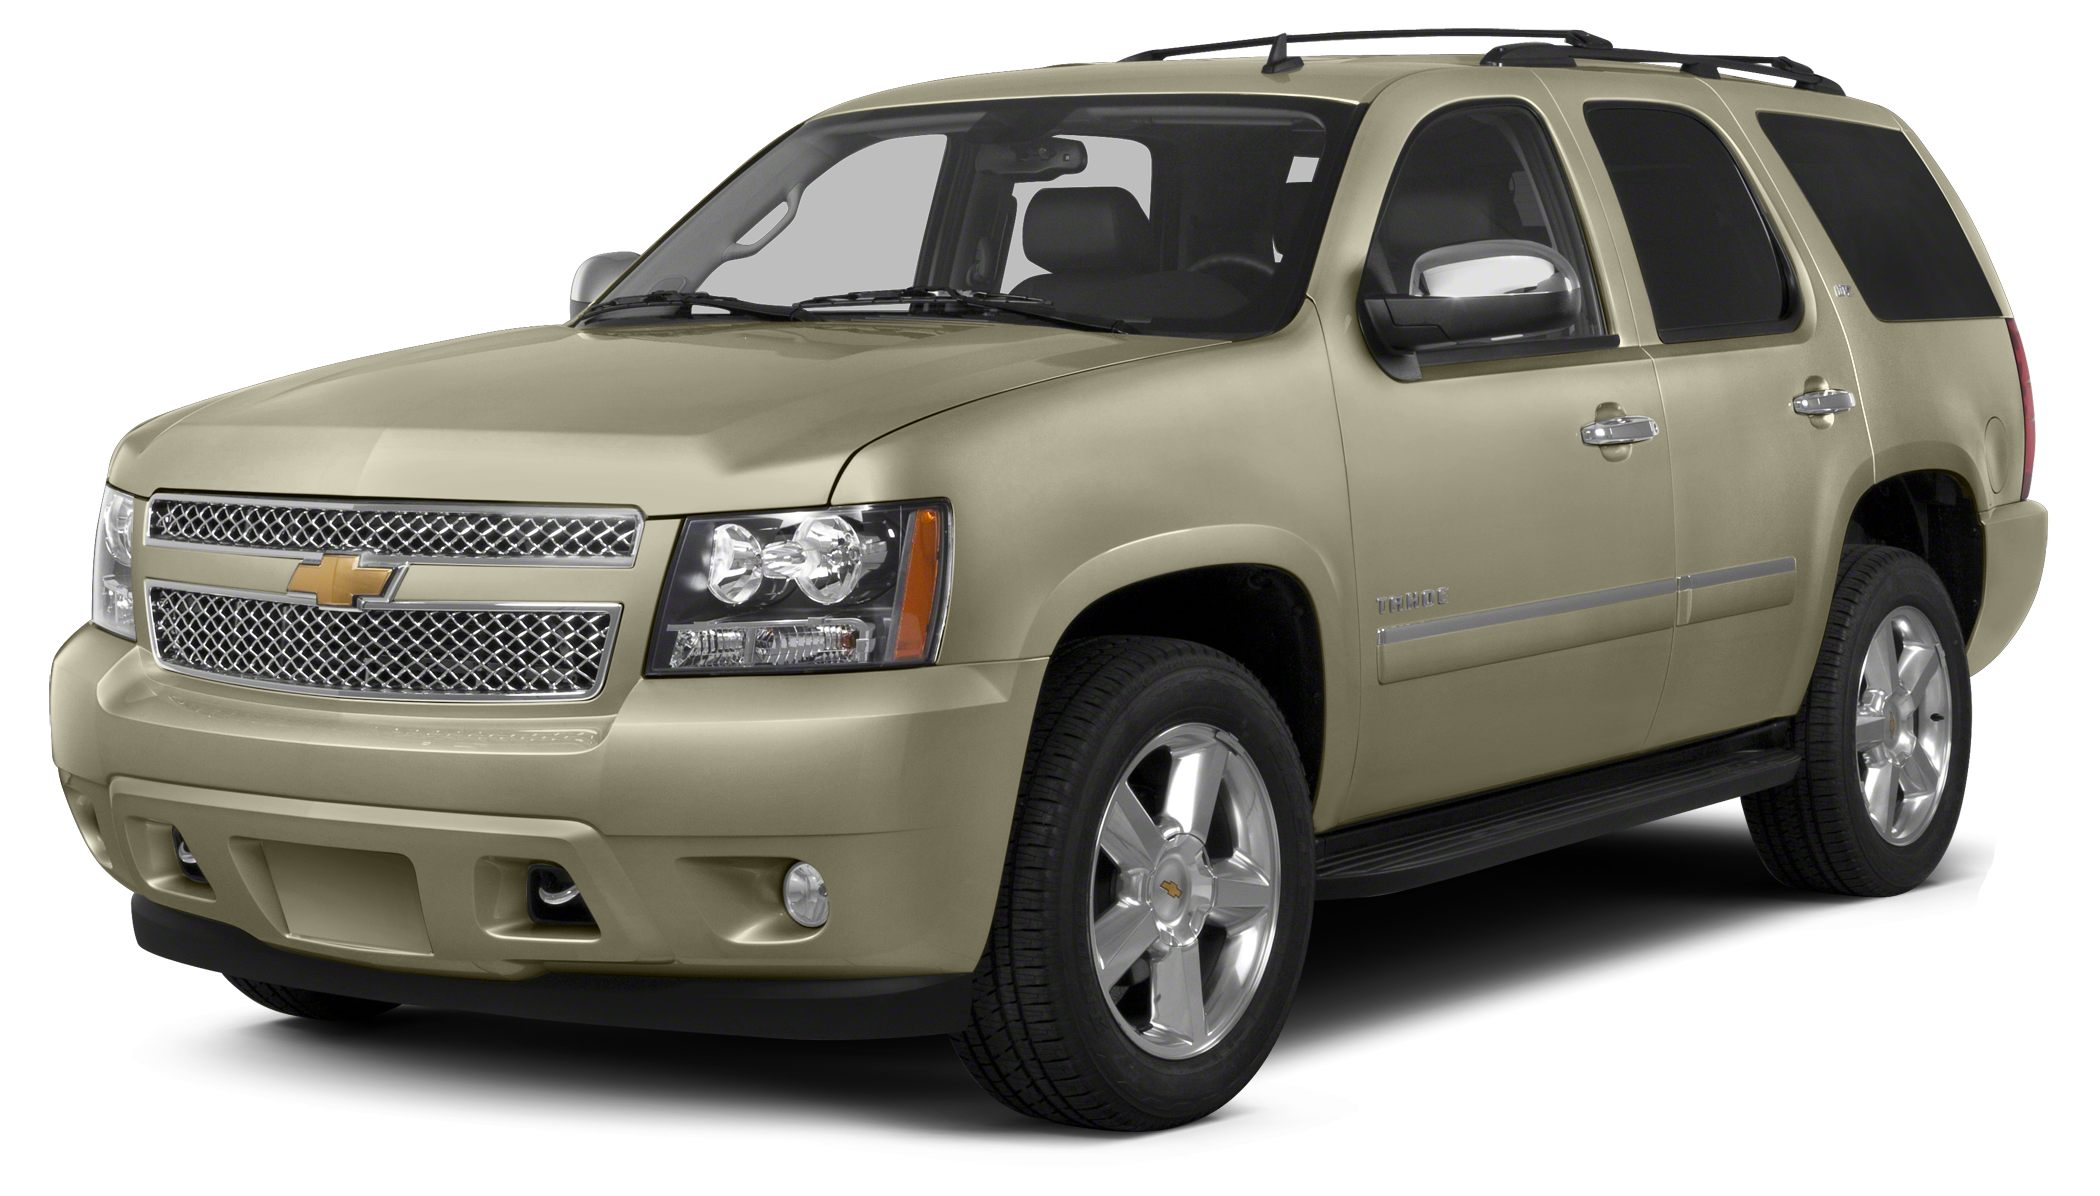 2013 Chevrolet Tahoe LTZ OPTION PACKAGES SUN ENTERTAINMENT AND DESTINATIONS PACKAGE includ